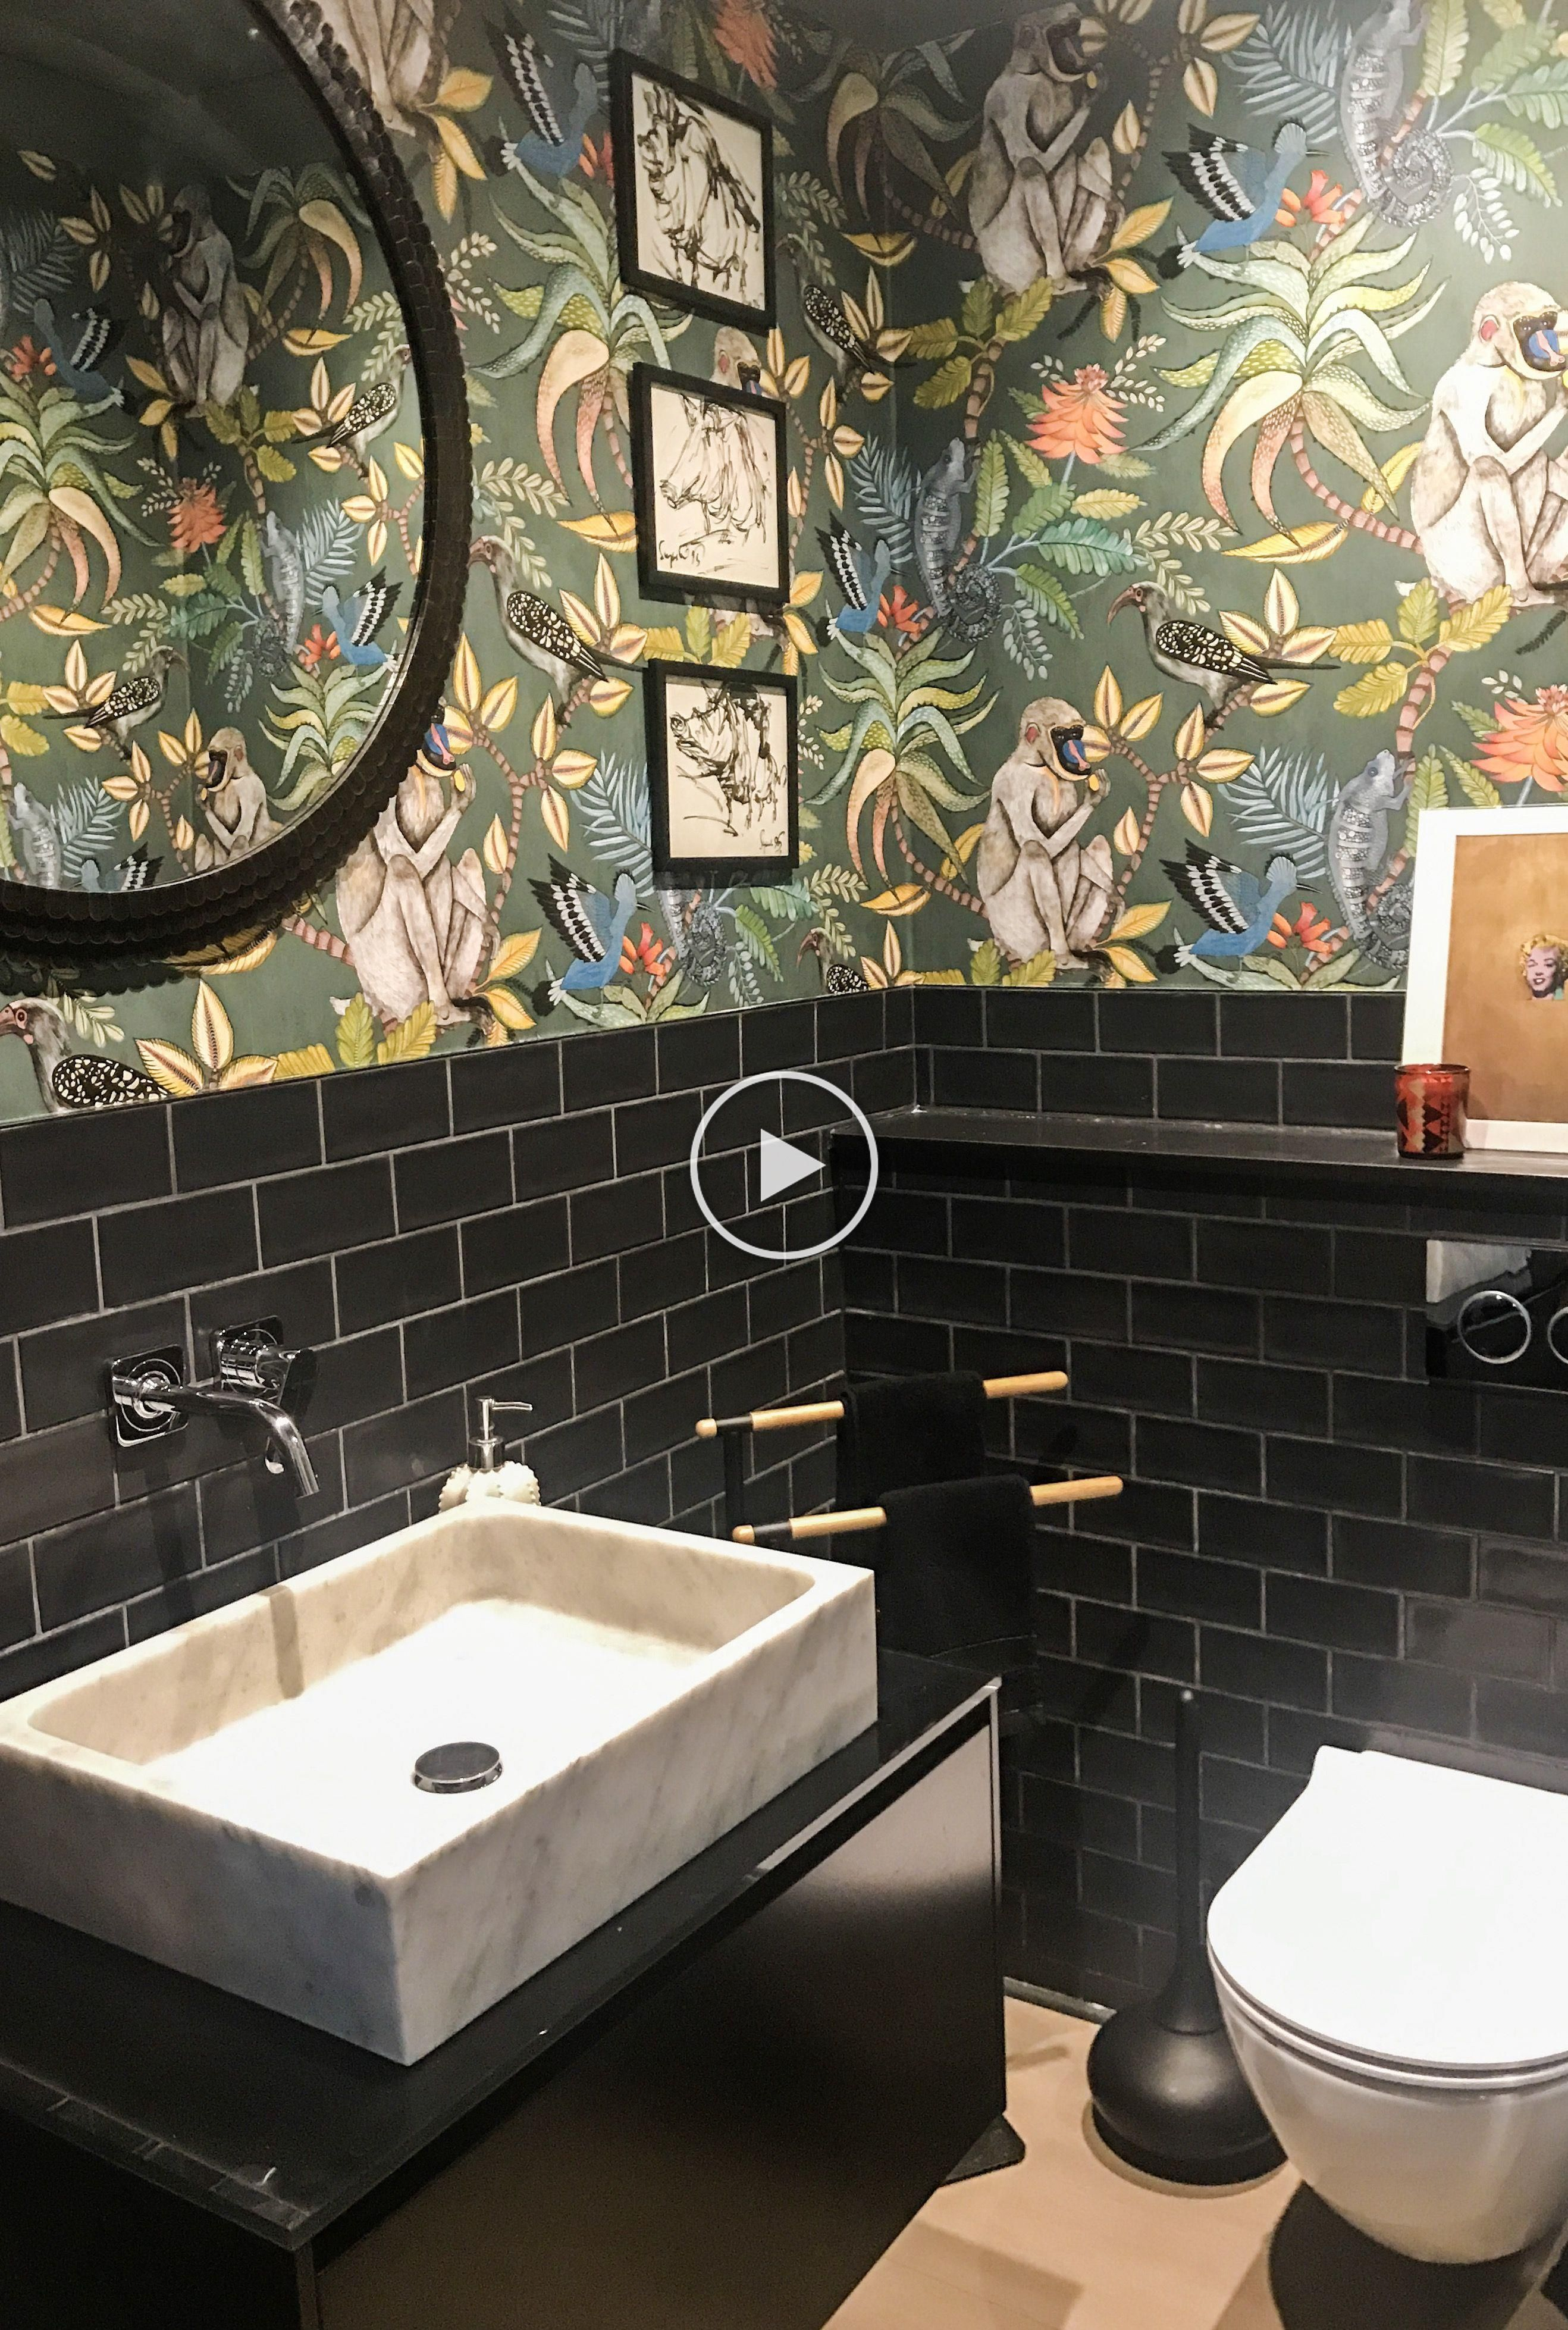 What Better Way To Add Interest To A Bathroom Wall Than With Trendy Jungle Inspired Wallpaper The Savuti Design Bathroom Wallpaper Guest Toilet Downstairs Loo